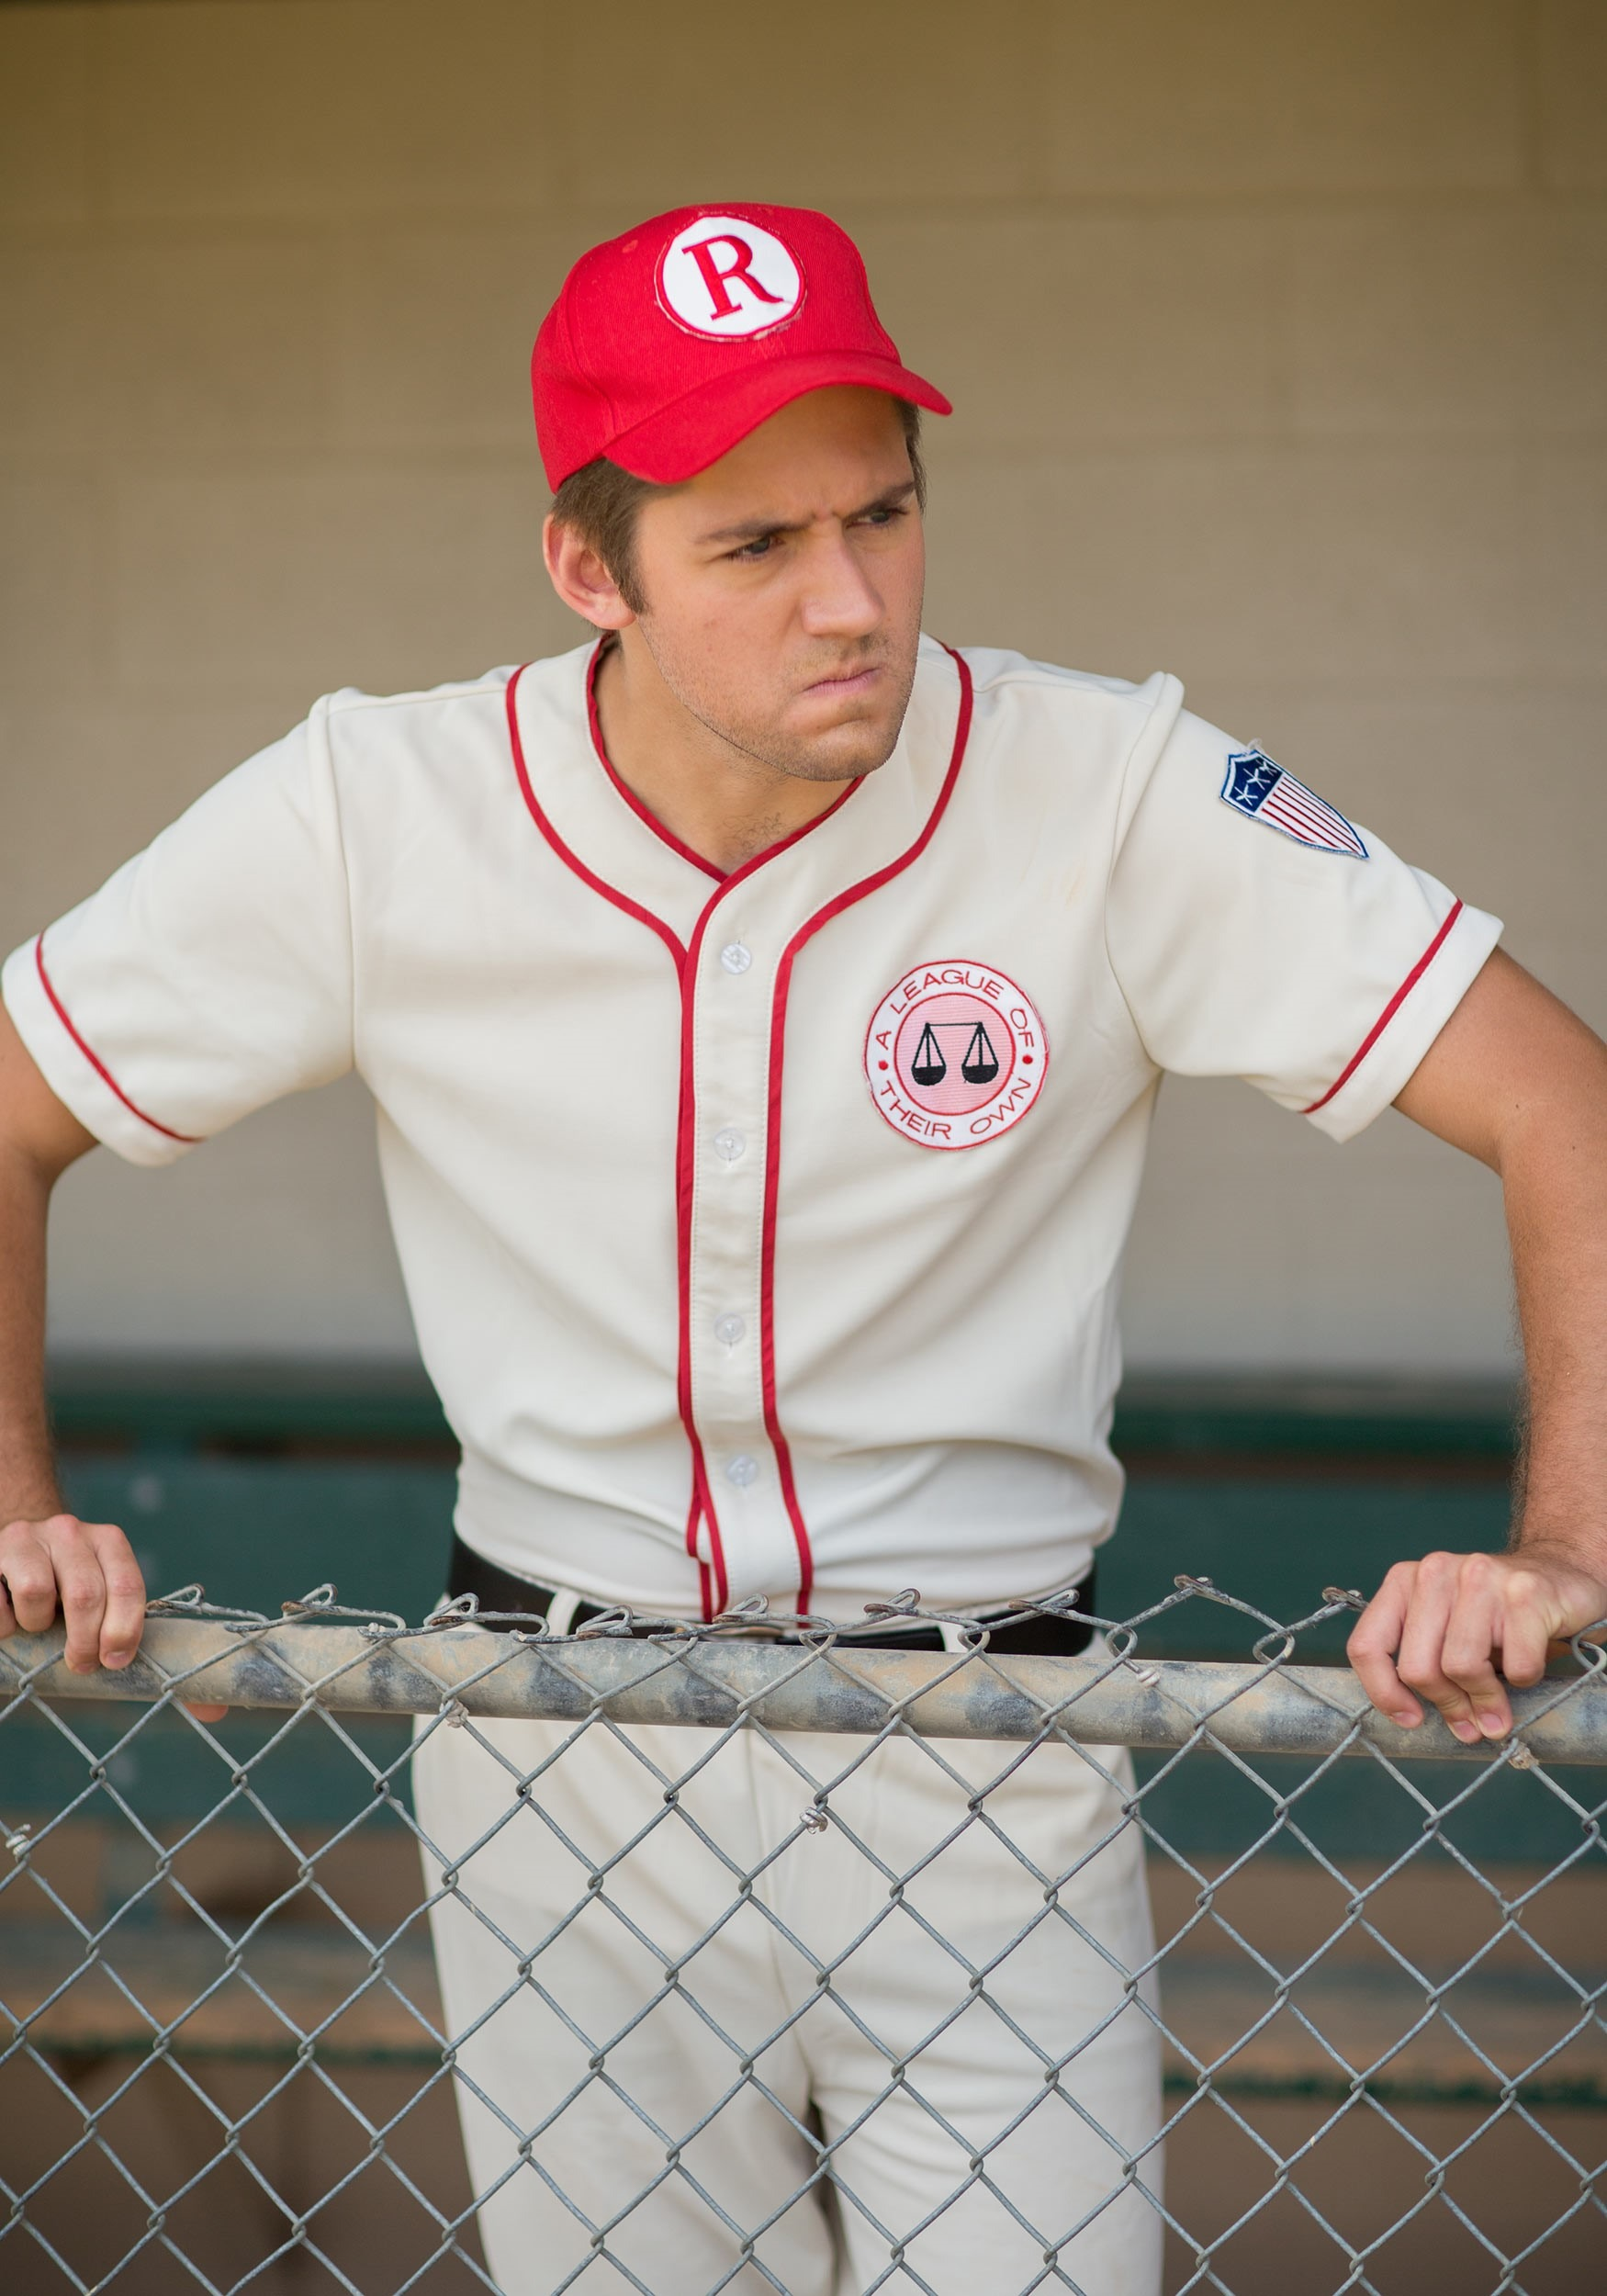 A League Of Their Own Toddler Jimmy Costume